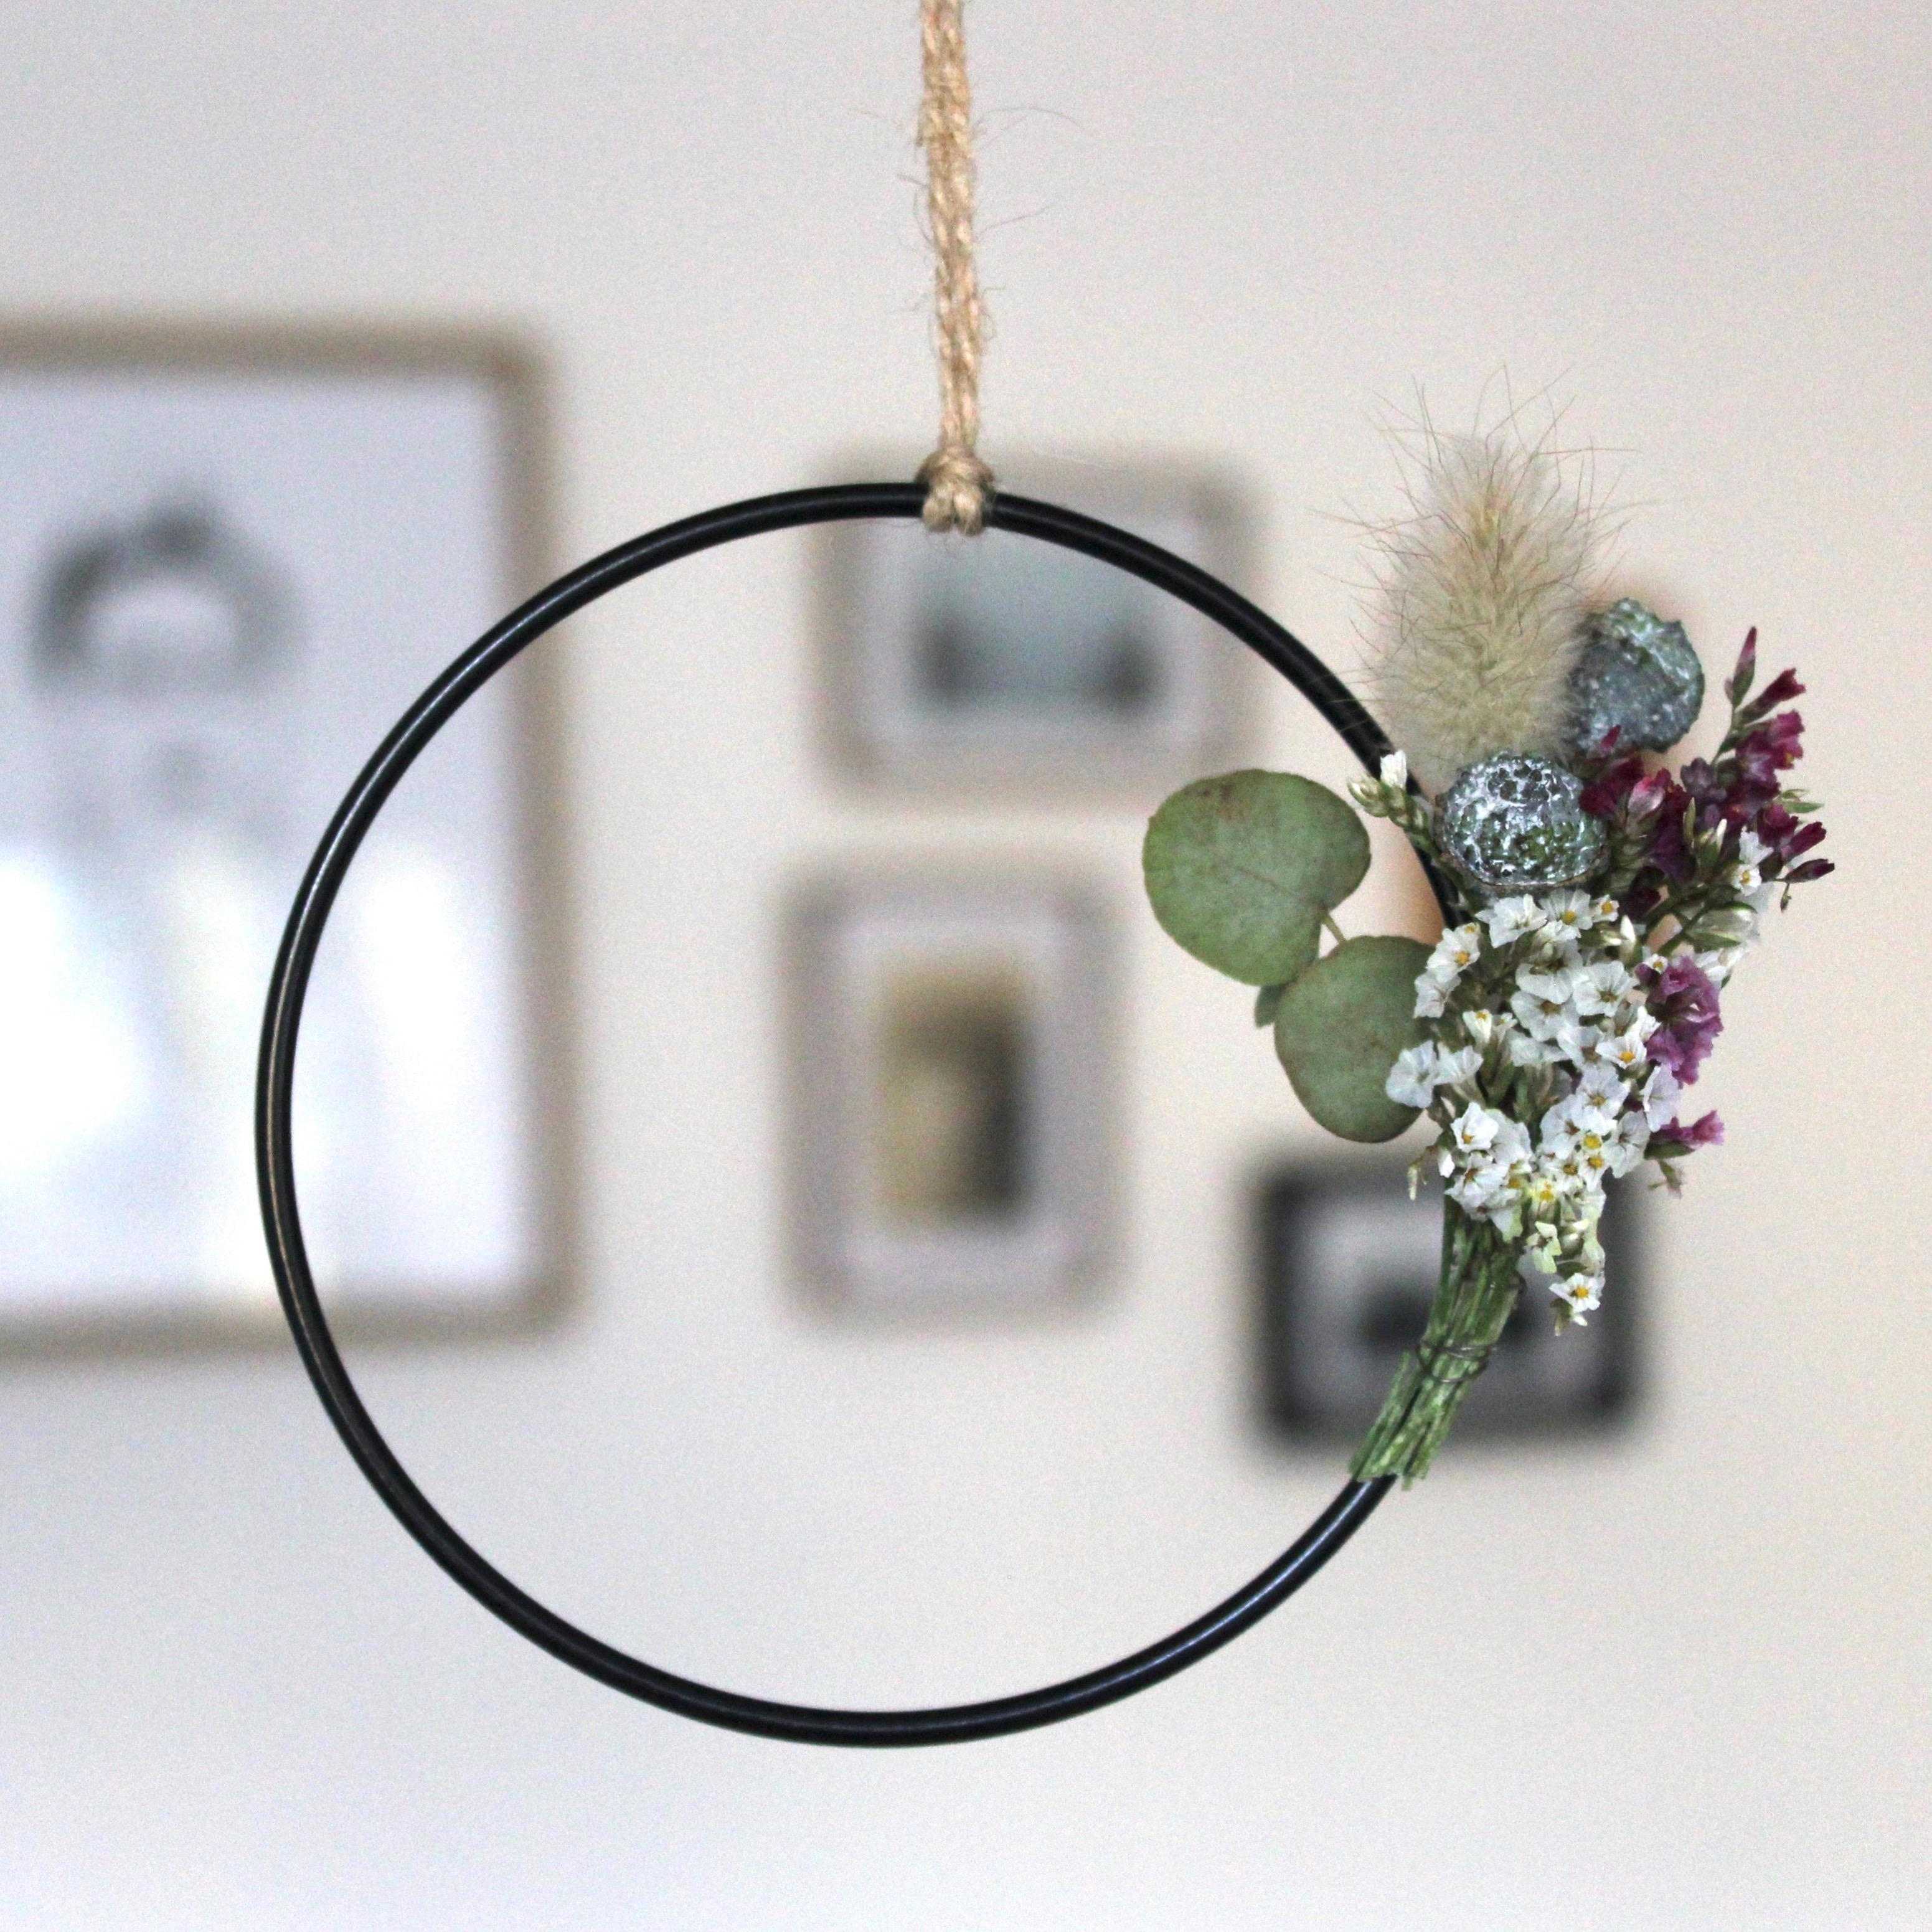 Mini hoop with a mini bouquet blumenreifen handmade diydecor couchliebt trockenblumen blumenliebe homedecor  03394842 fccd 4f64 8ef5 bfb85f15378e